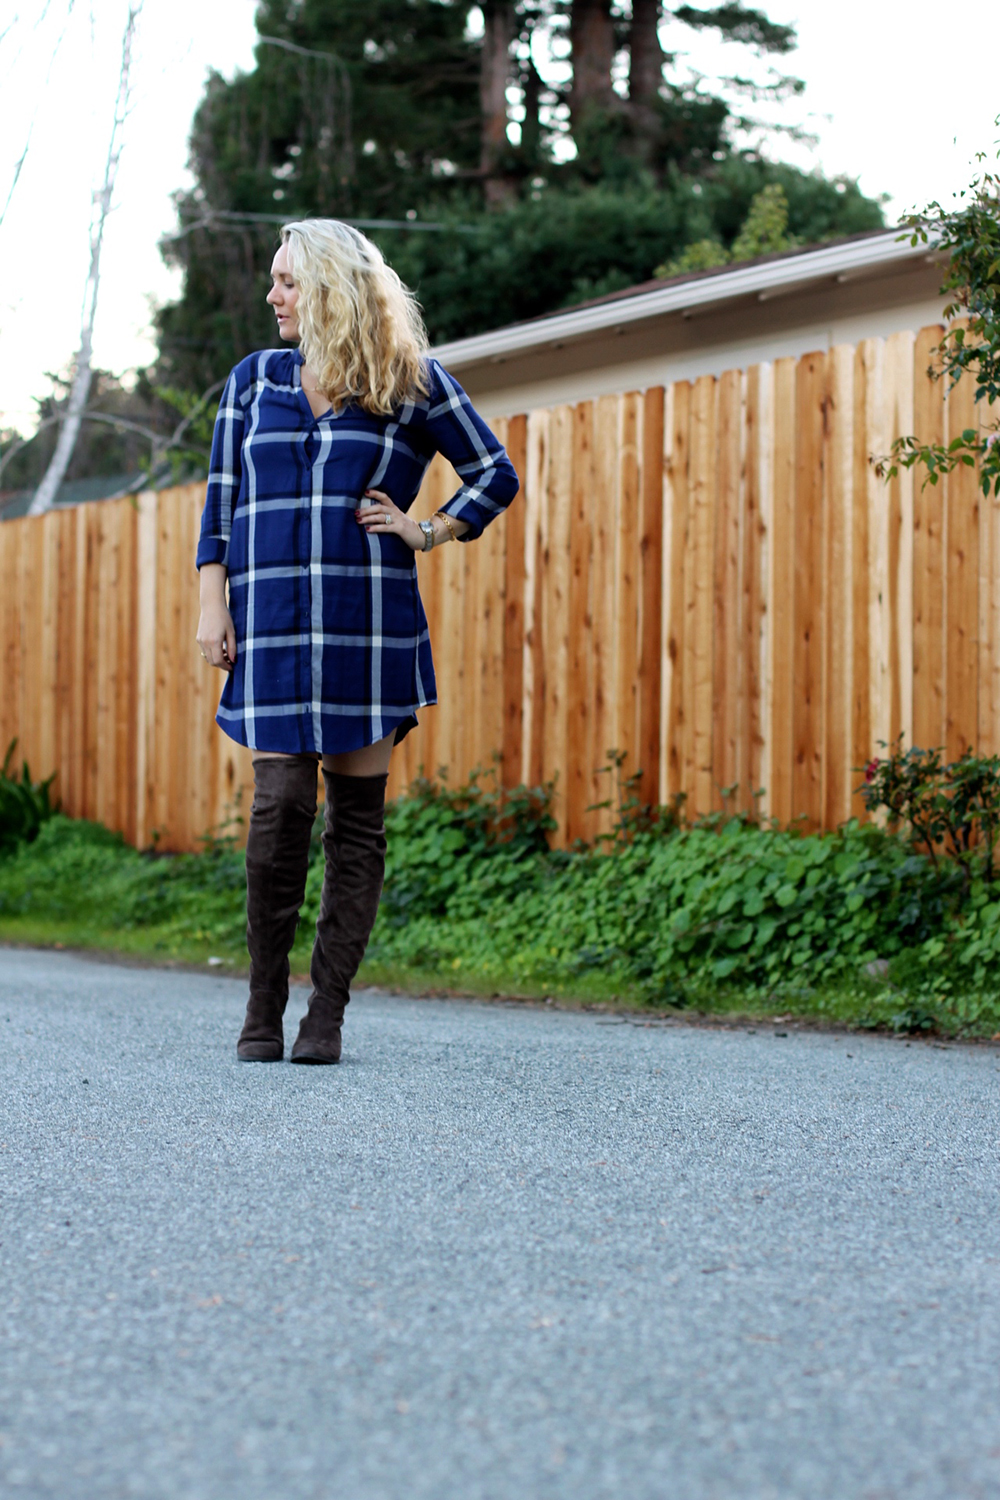 cupcakes-and-cashmere-plaid-shirtdress-outfit-inspiration-fall-fashion-mom-style-have-need-want-2